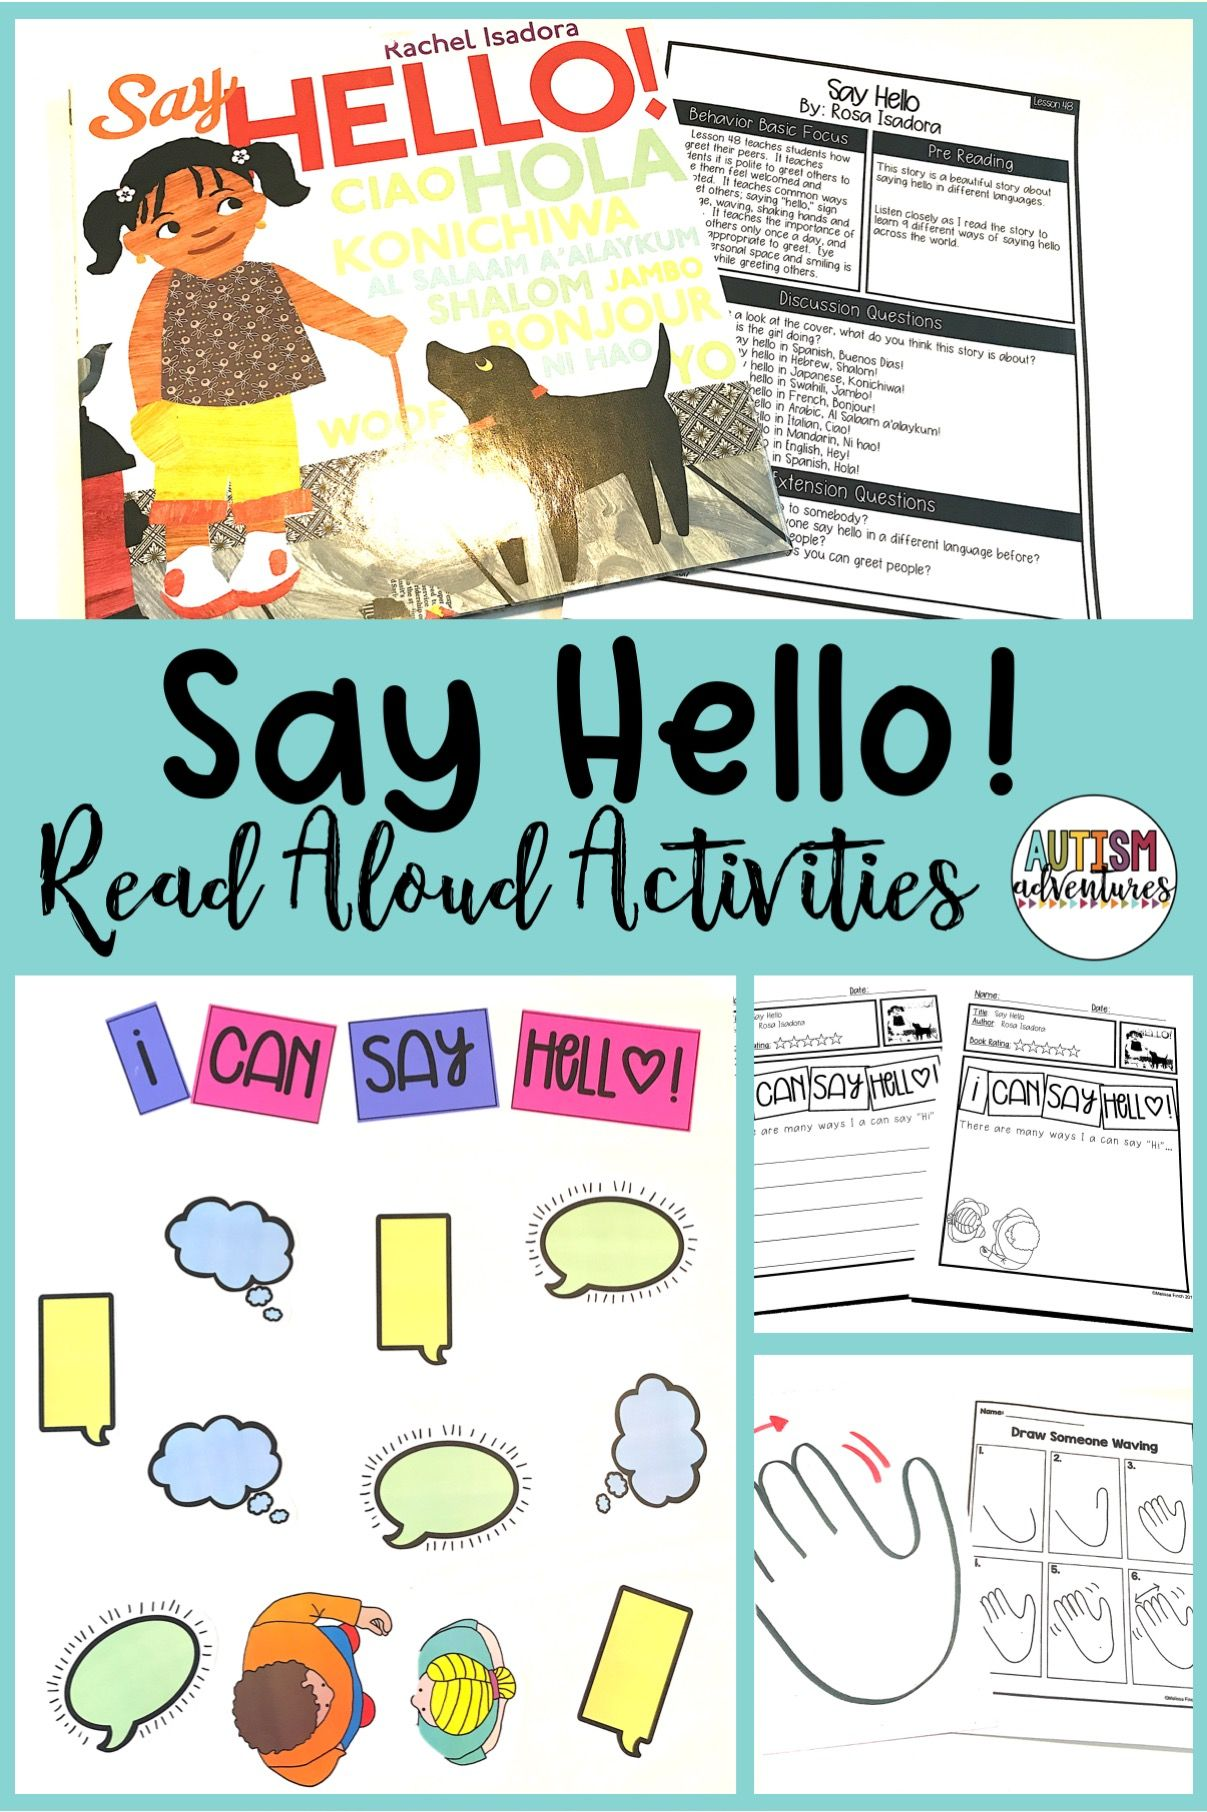 How Do Say Hello In Spanish Image Gallery